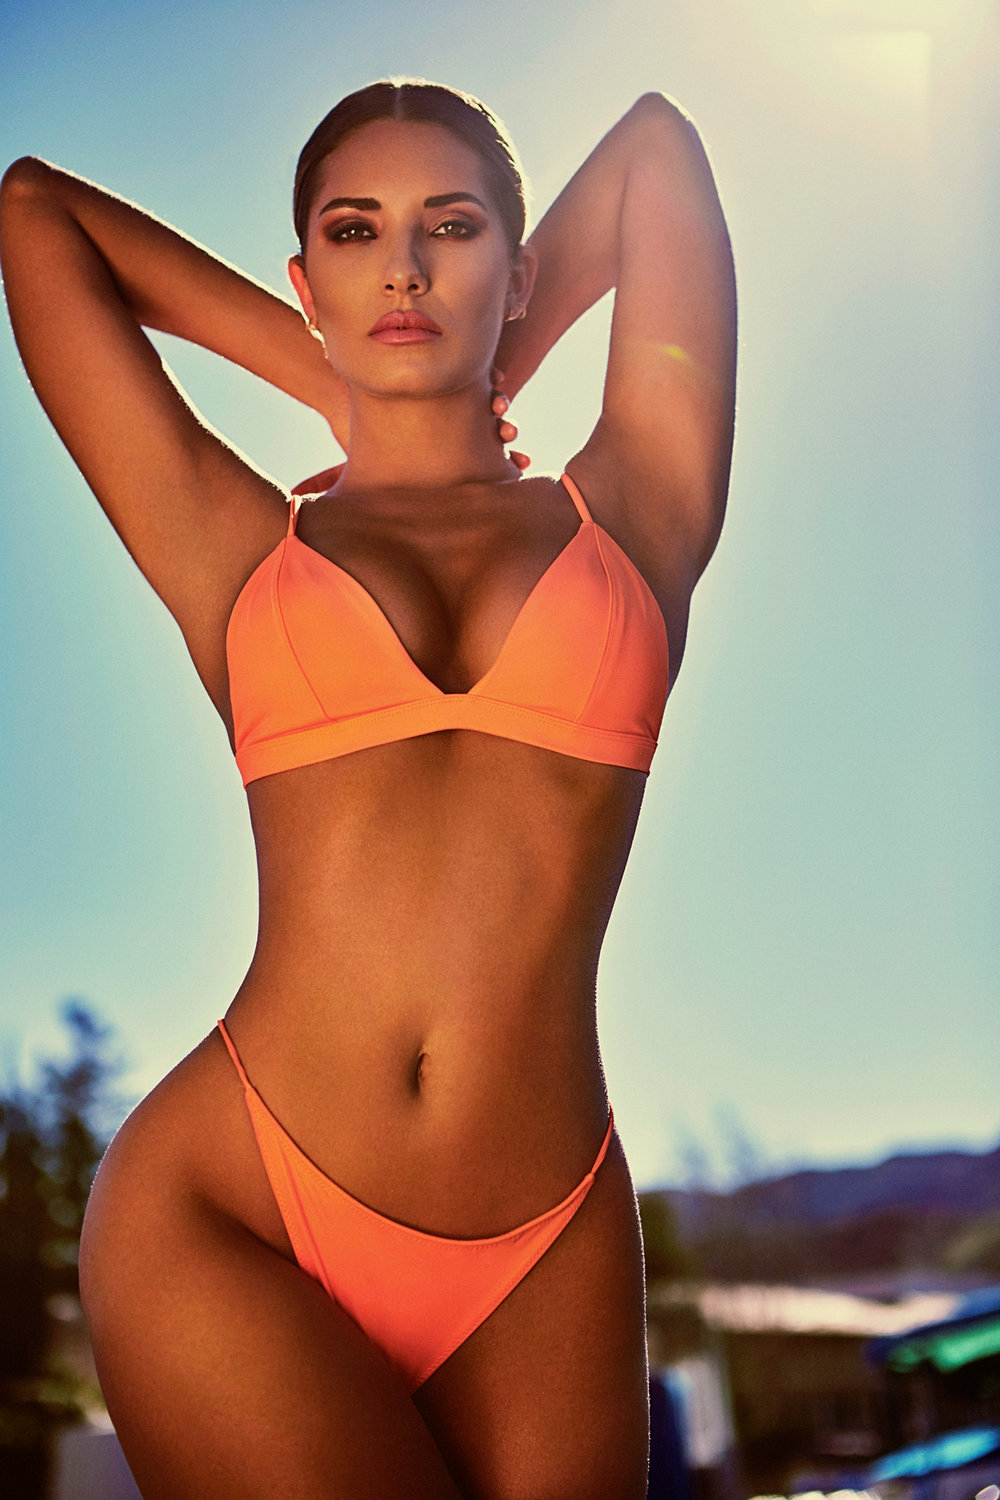 Sierra Skye Hot Bikini Outdoors Pose - Sierra Skye Hot Bikini Outdoors Pose